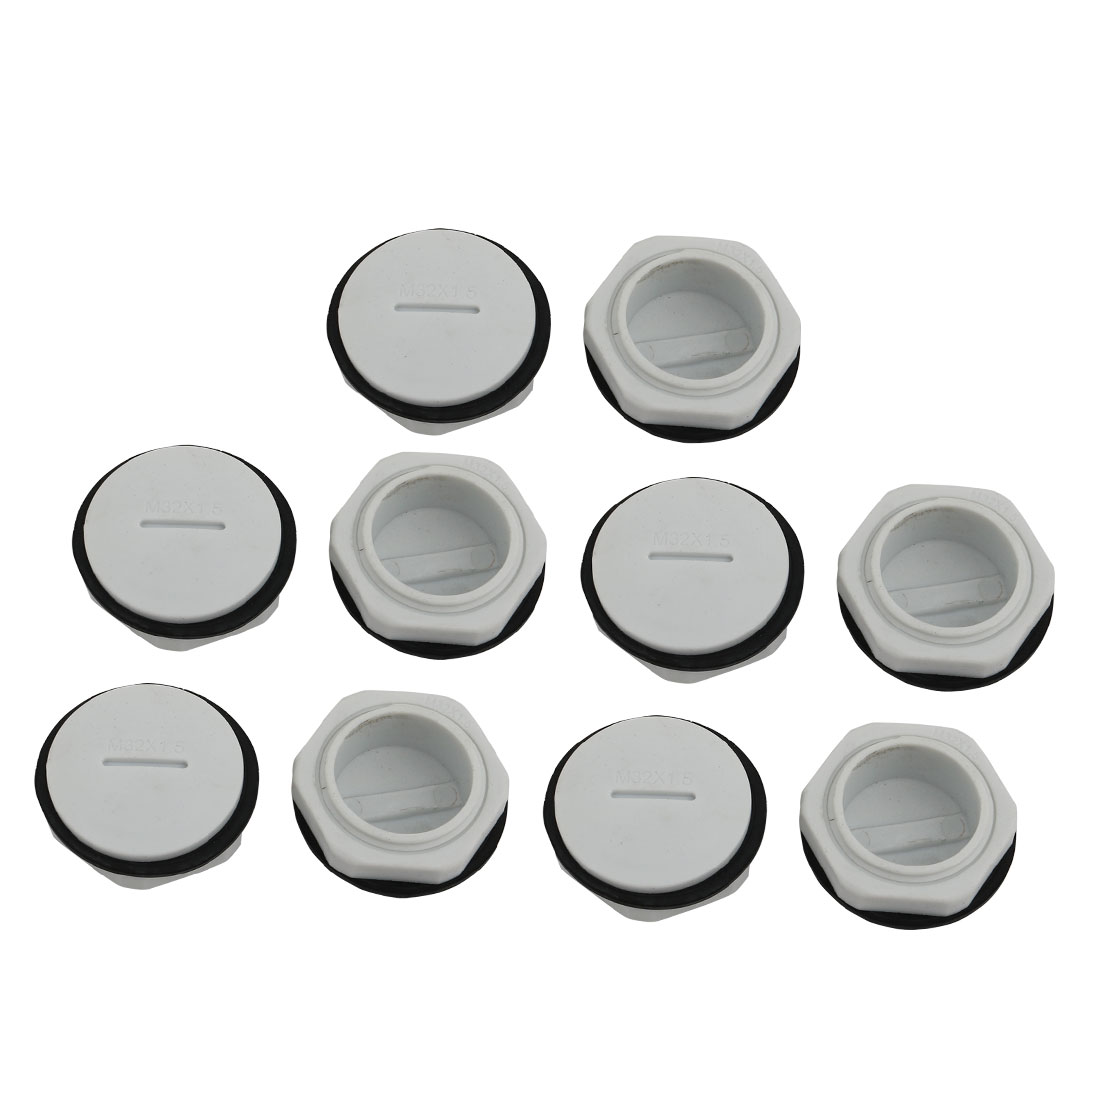 10pcs GLW-M32 Nylon Threaded Cable Gland Cap Round Screw-in Cover Gray w Washer